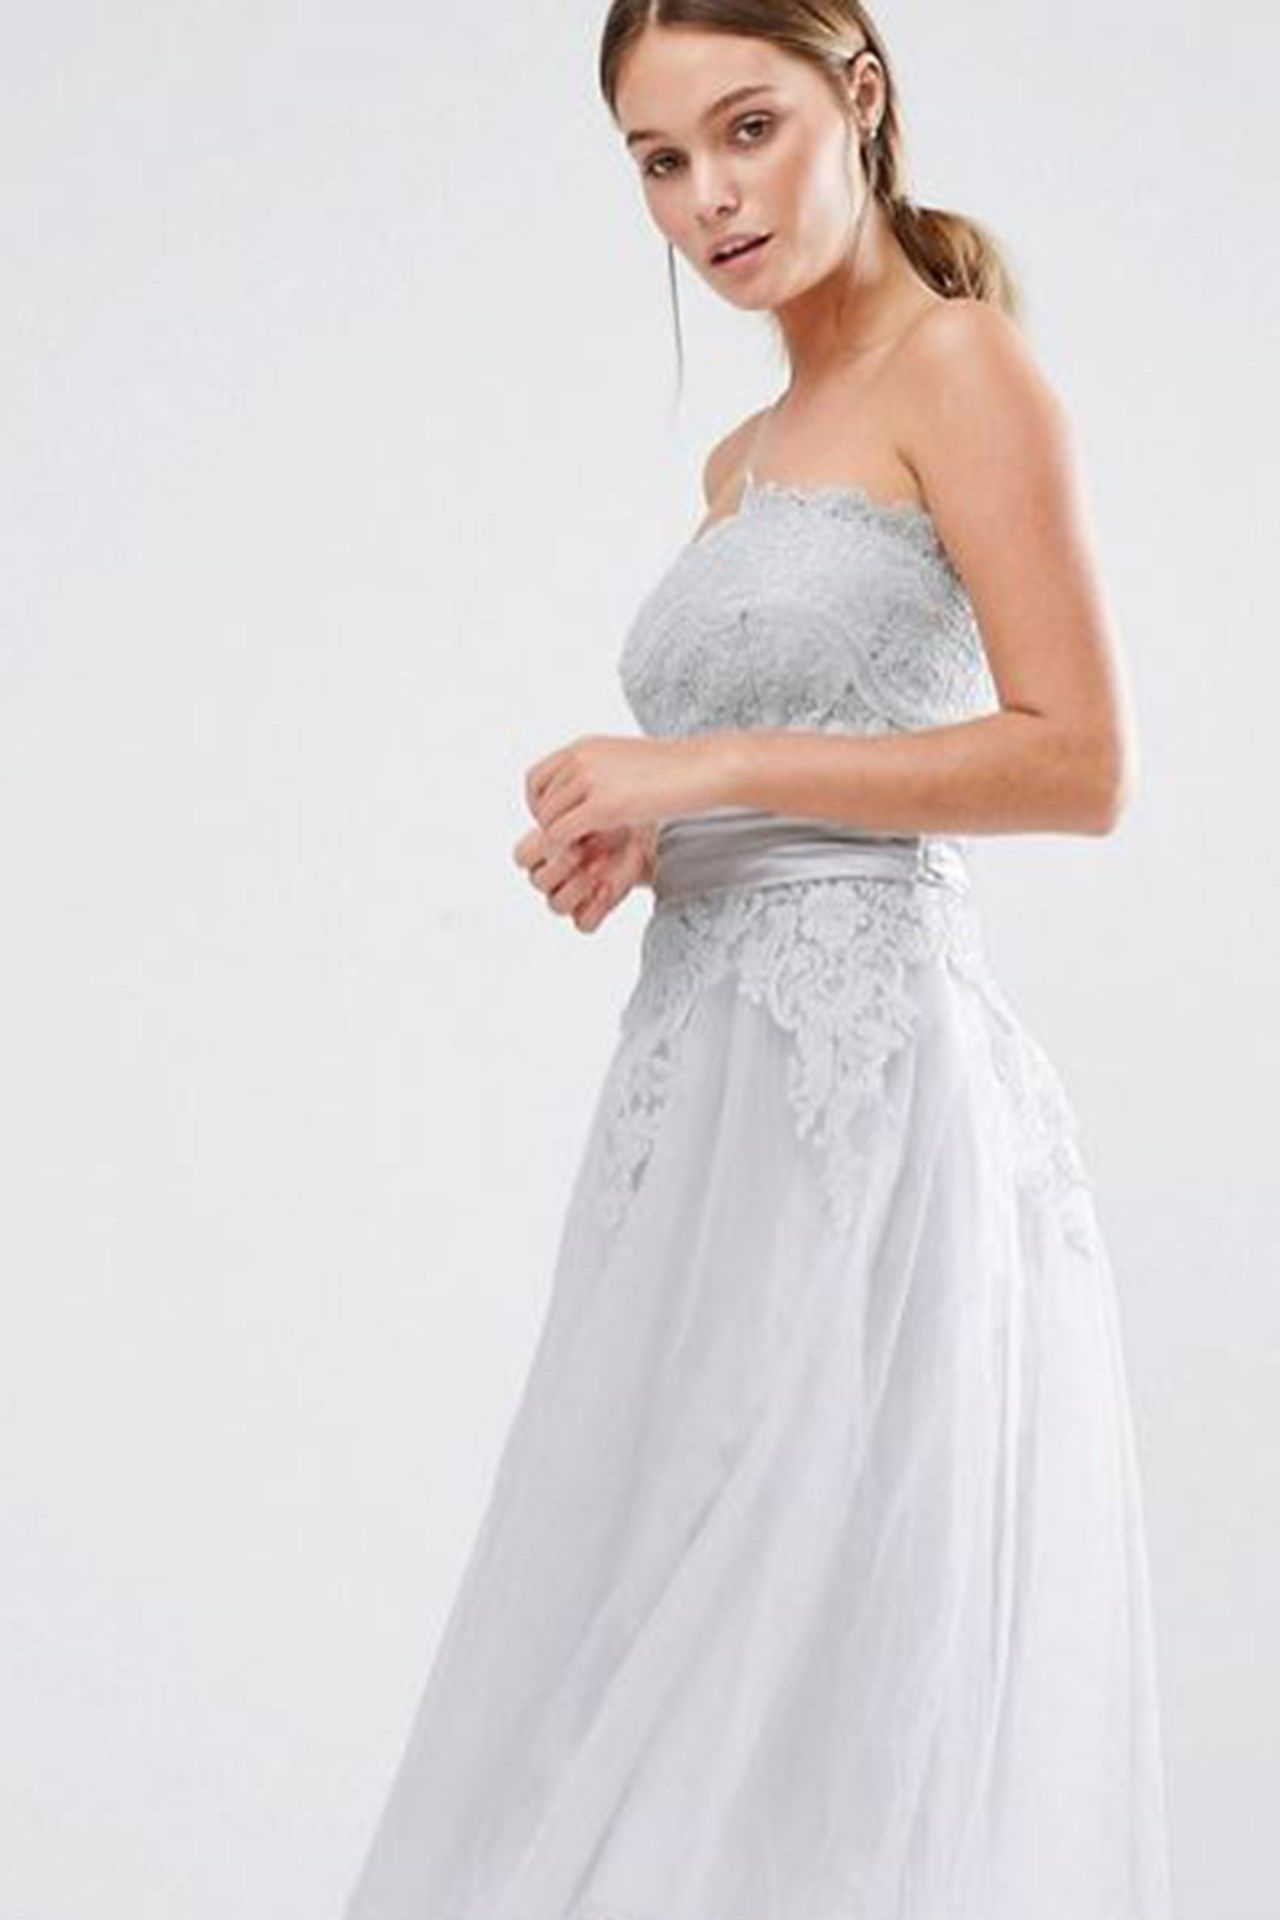 Where To Look For Bridesmaid Dresses On The High Street | Pinterest ...